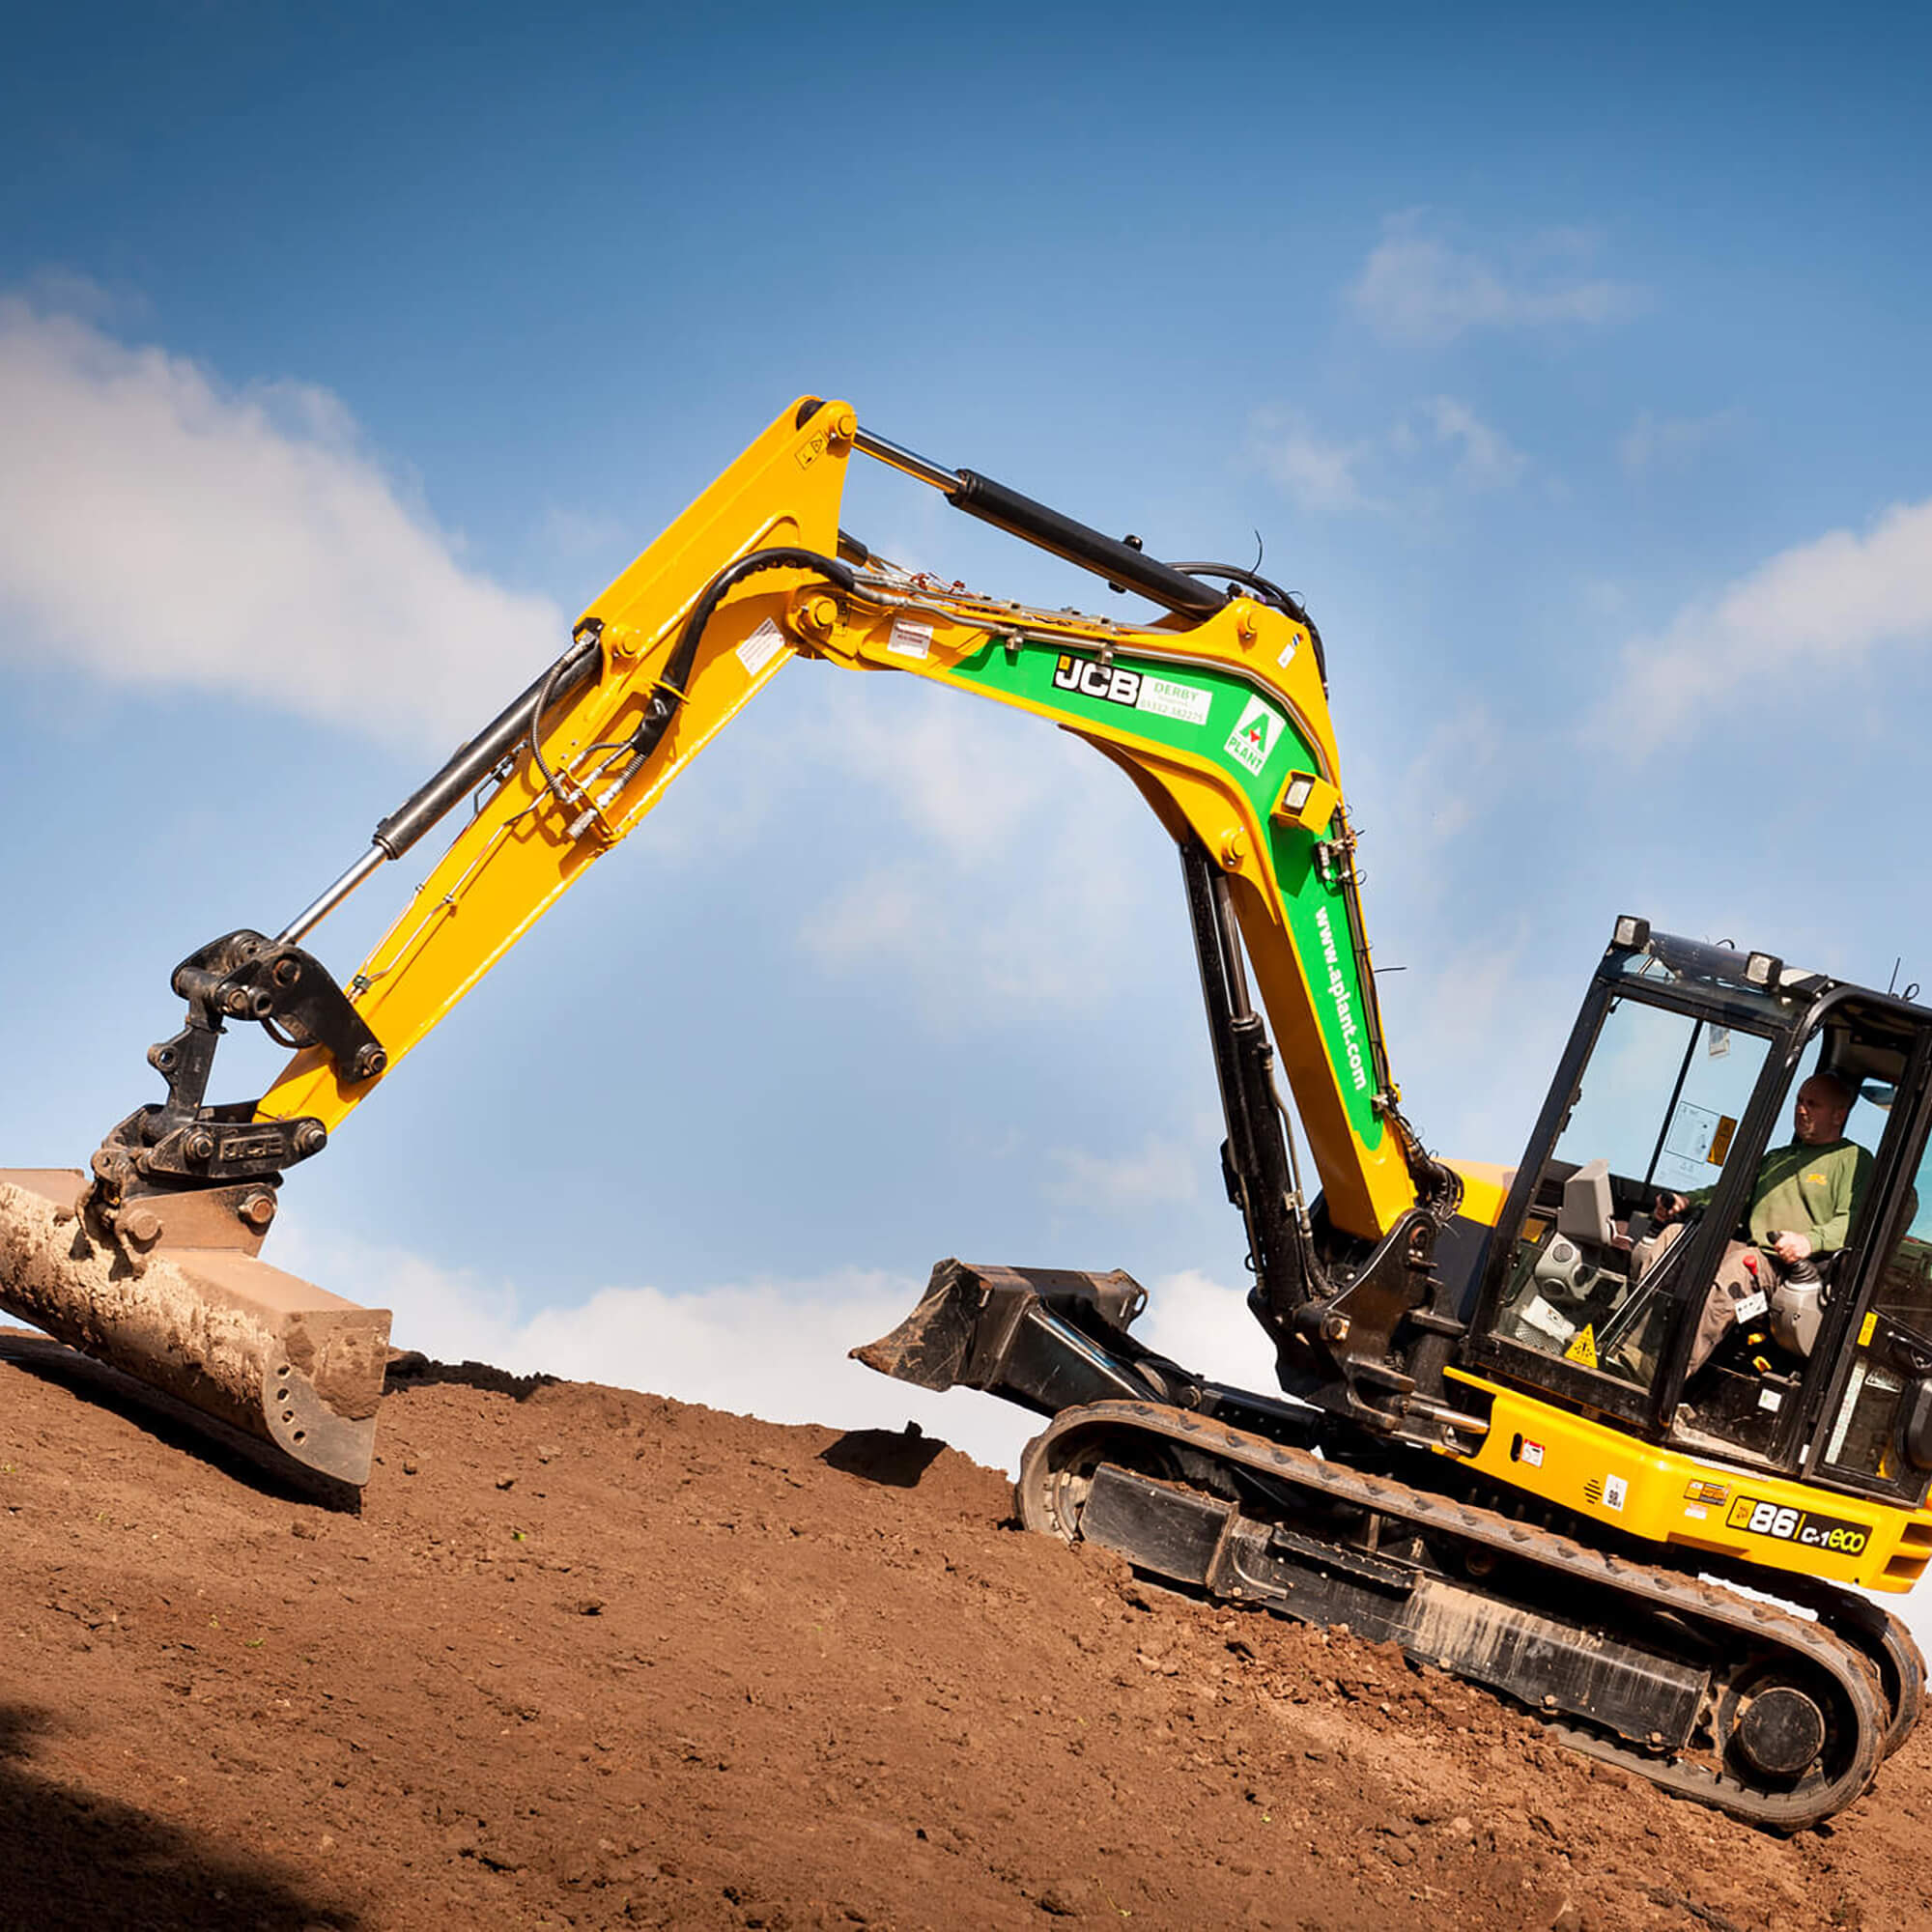 Picture of a man operating a digger